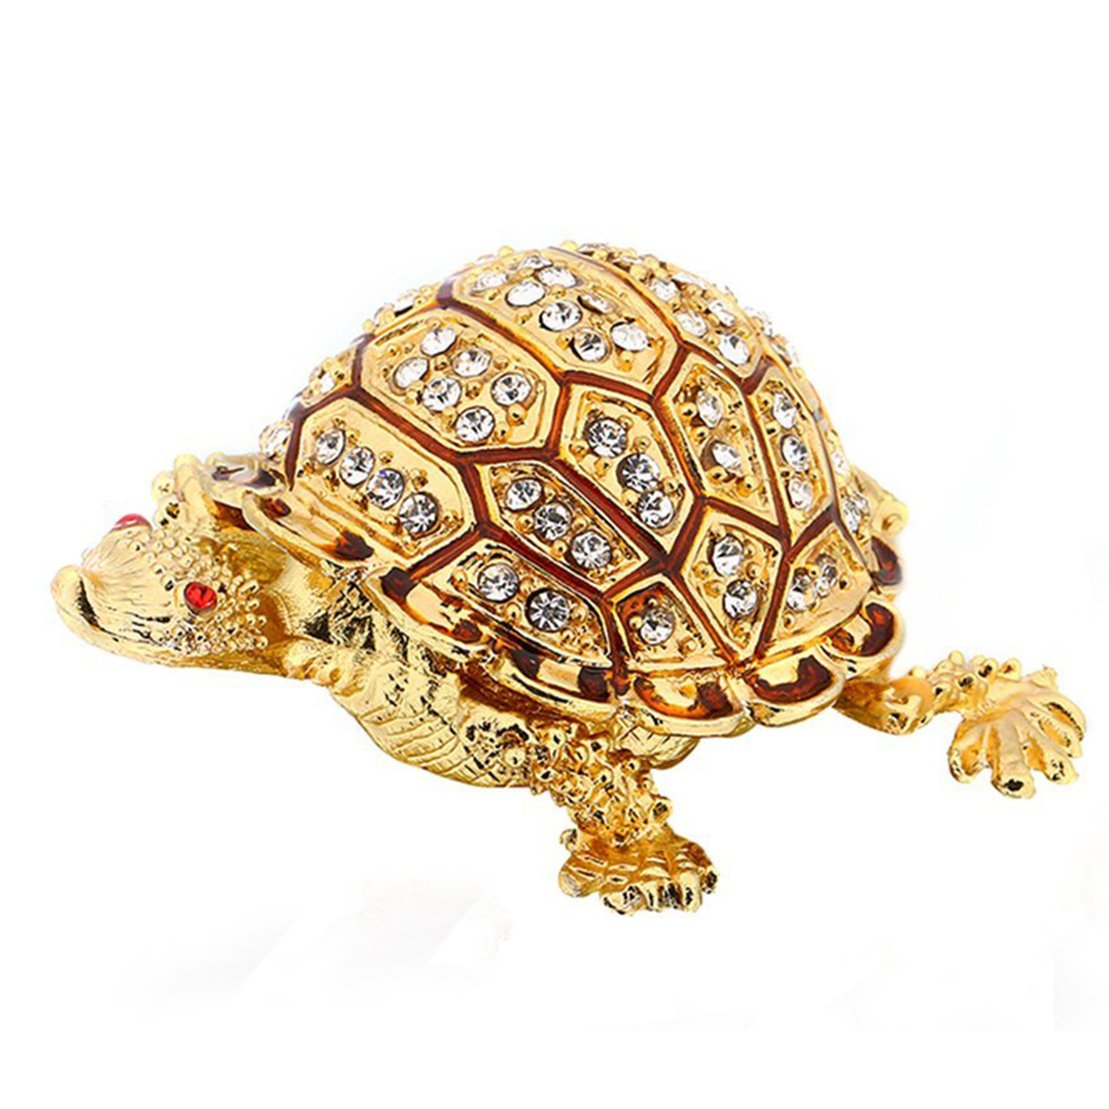 Waltz& F Trinket Boxes Hinged Crystals Jewelry Box with Gift Box Golden Turtle Figurines ltd